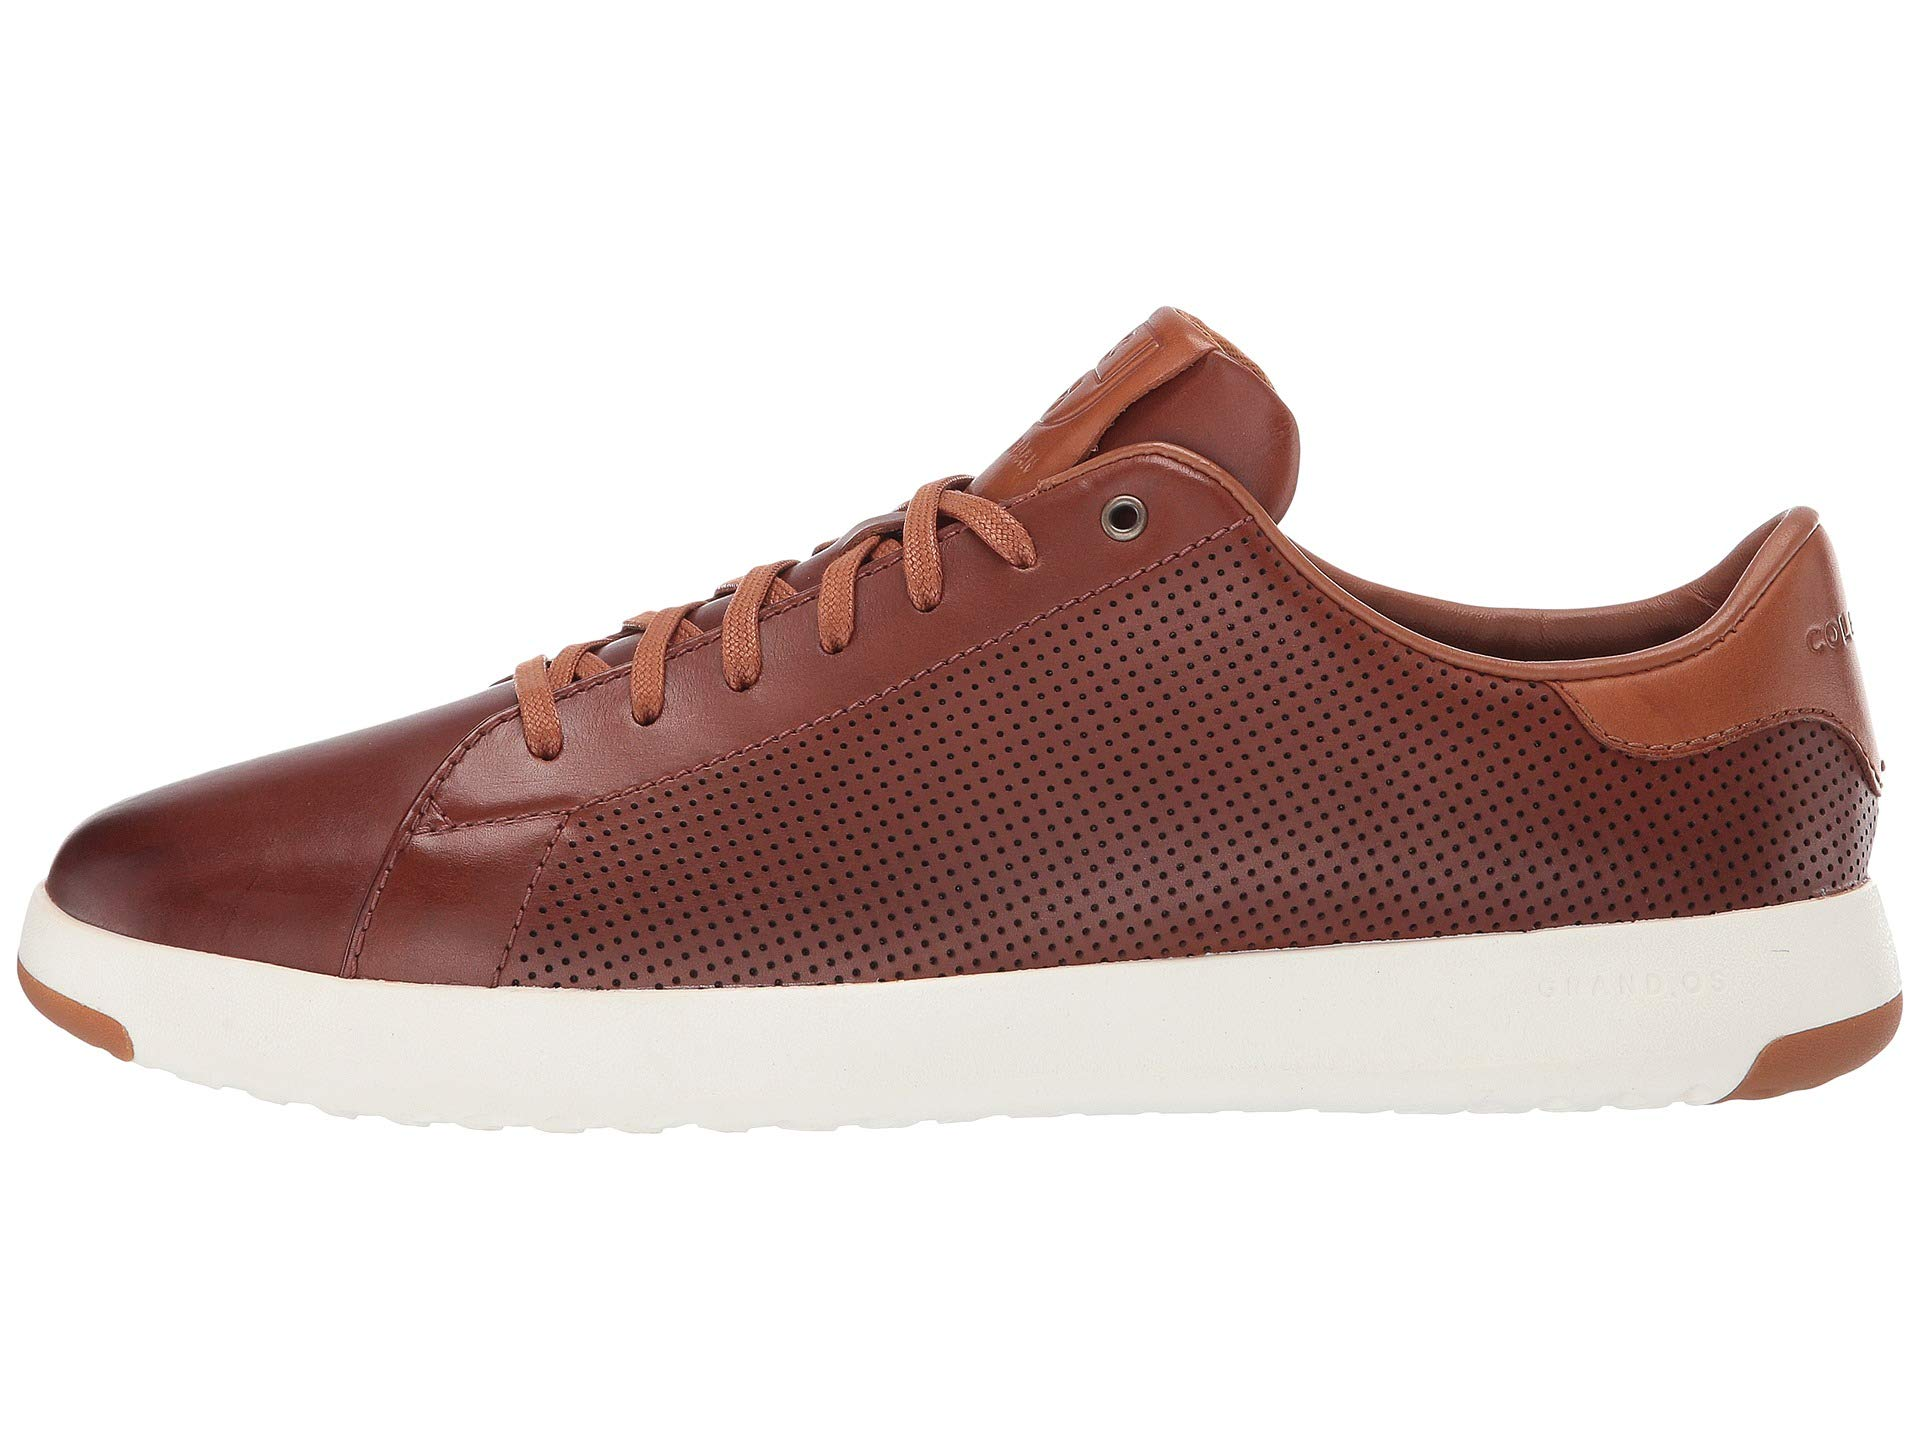 Cole Haan Mens Grandpro Tennis Sneaker 7 Woodbury Handstained Leather by Cole Haan (Image #6)